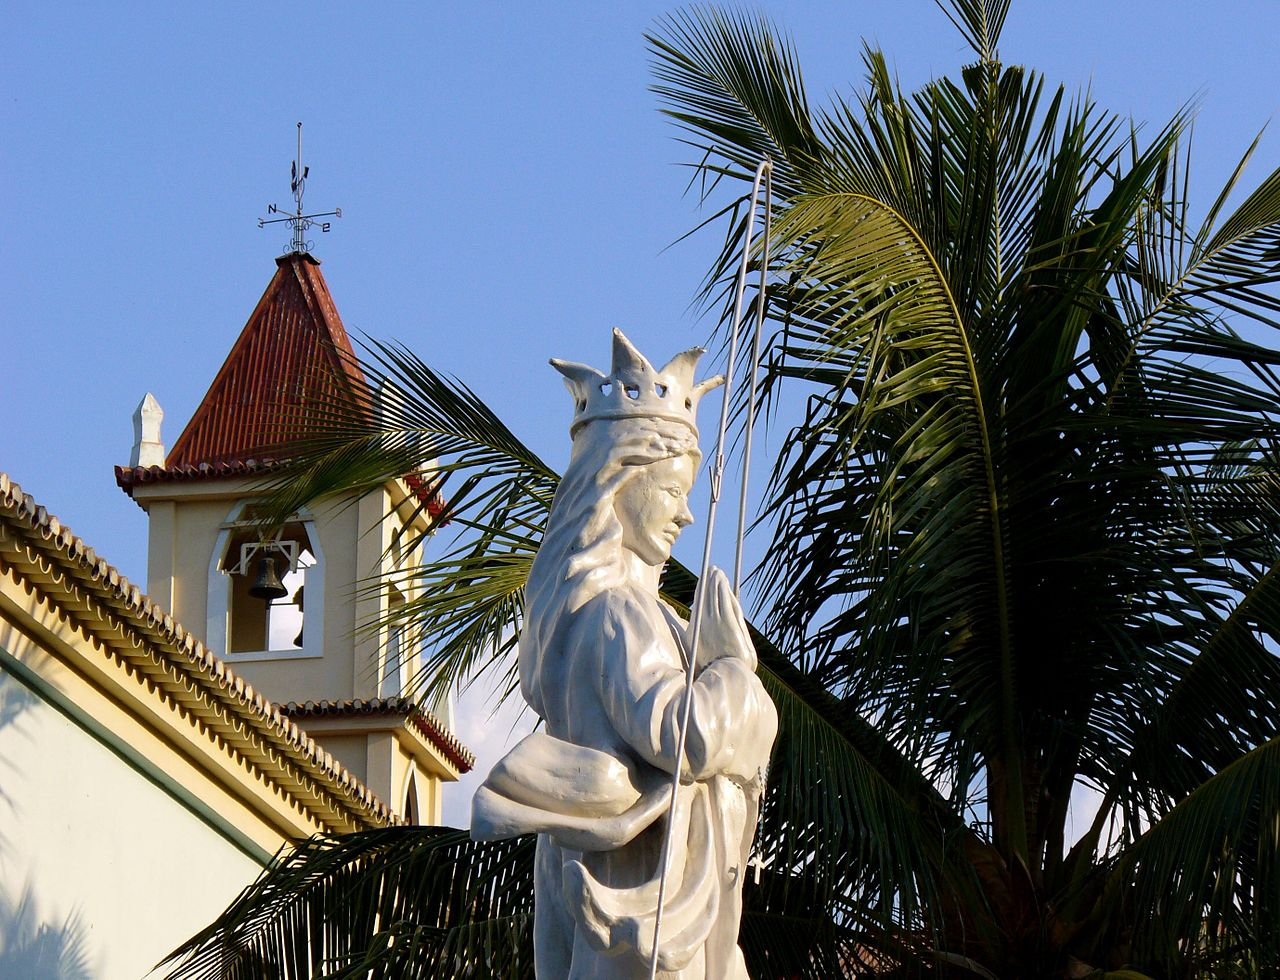 Statue of Our Lady in Balide